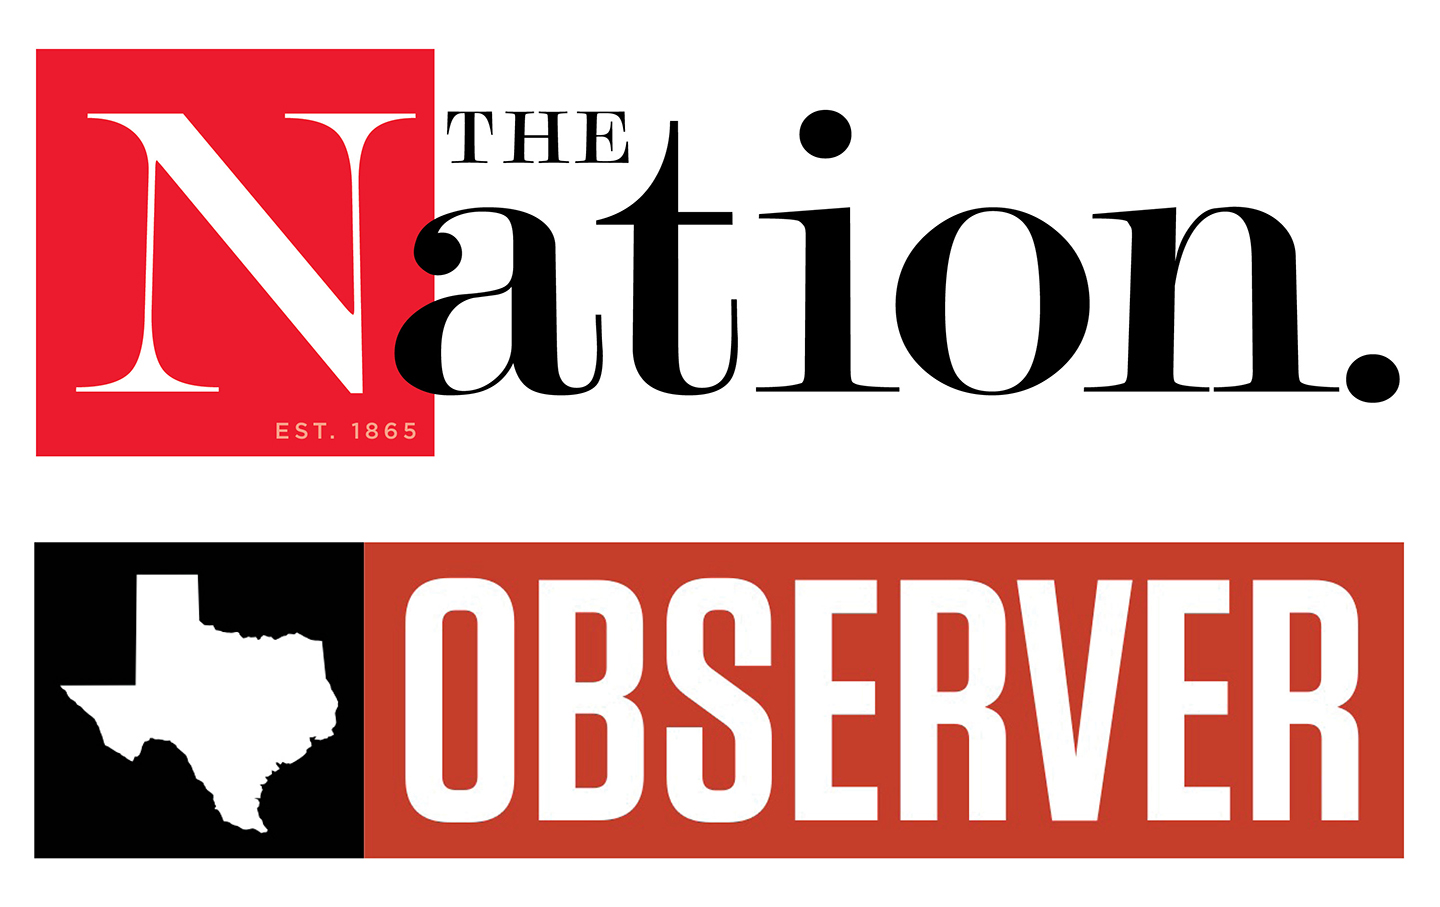 The Nation Texas Observer Partnership